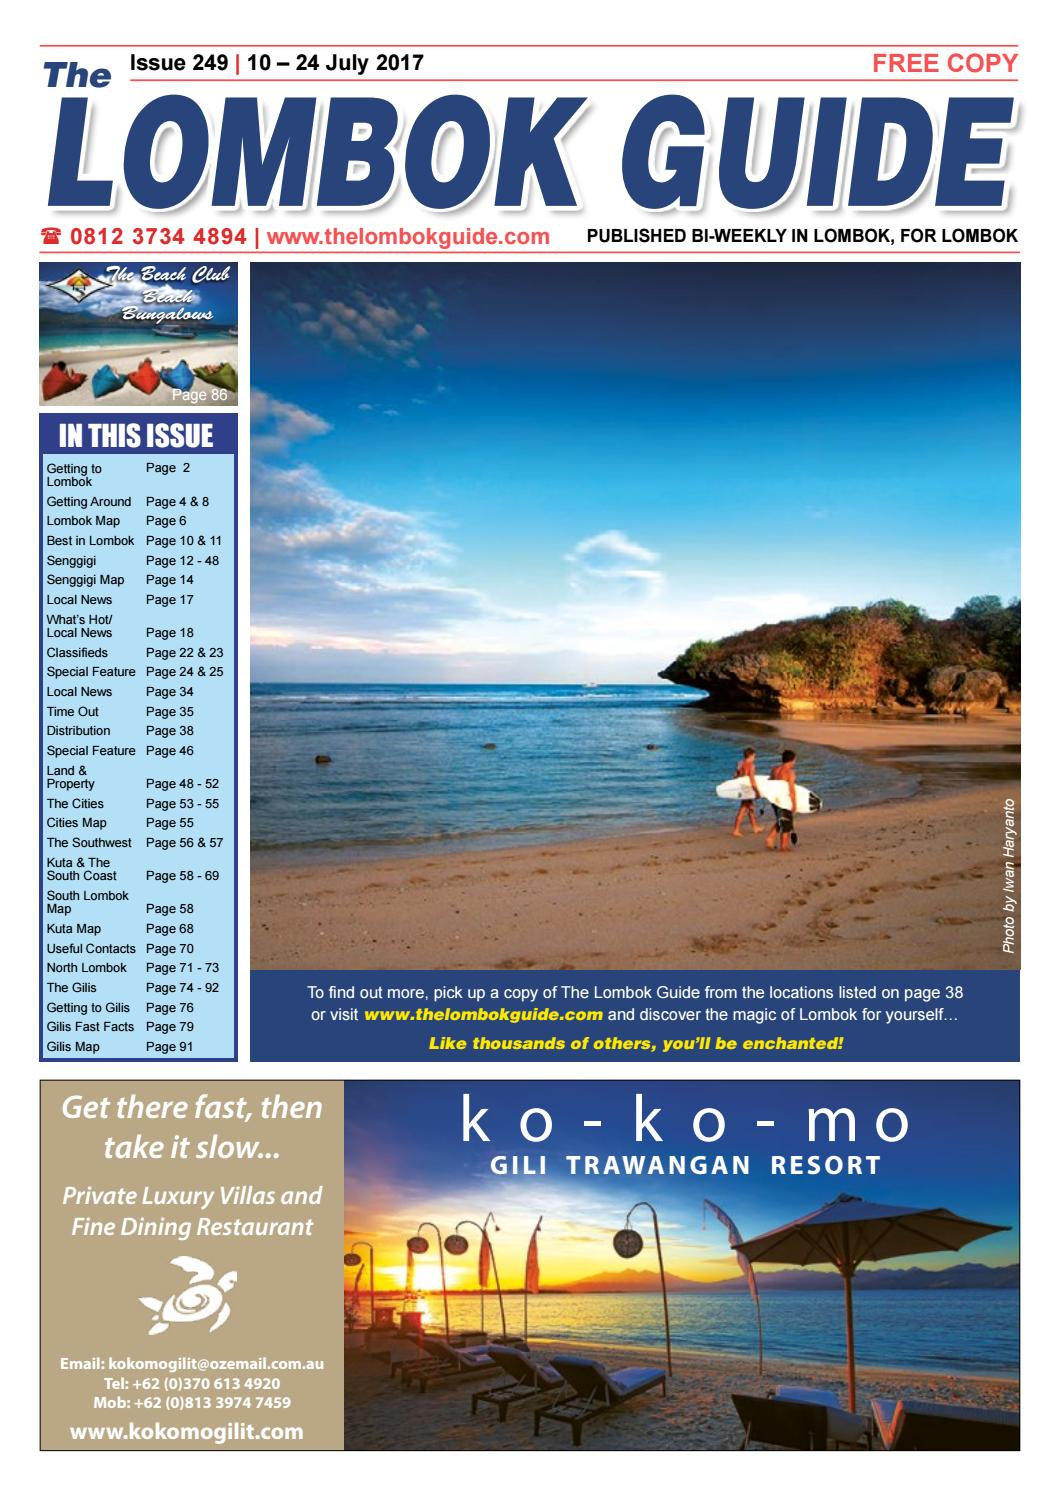 The Lombok Guide Issue 249 By Issuu Agung Voucher Hypermart 50000 Bth